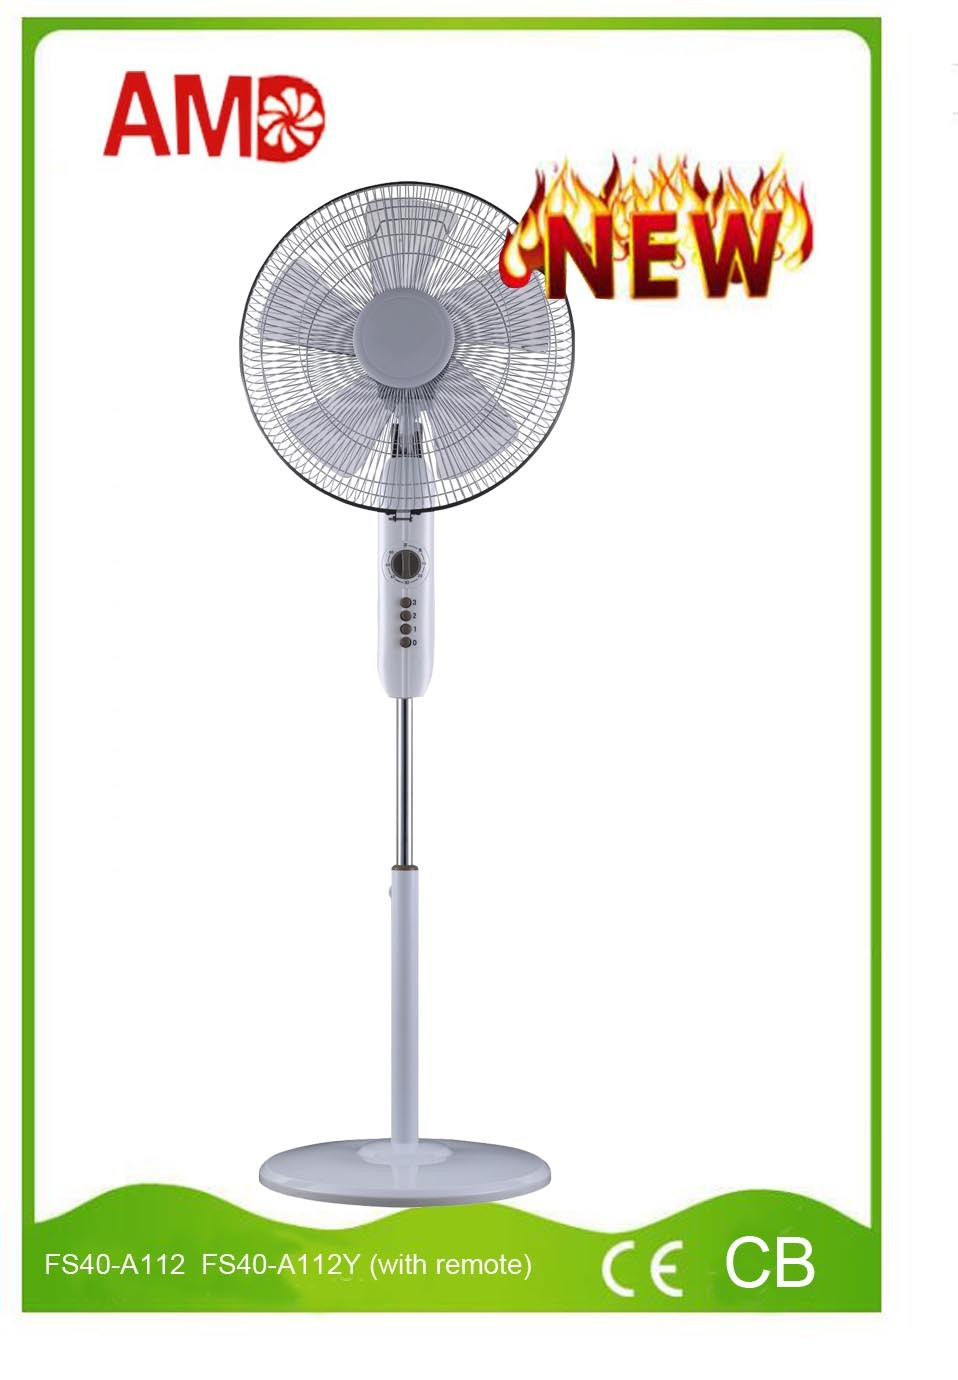 2016 New Design Stand Fan with CE Approved (FS40-A112)